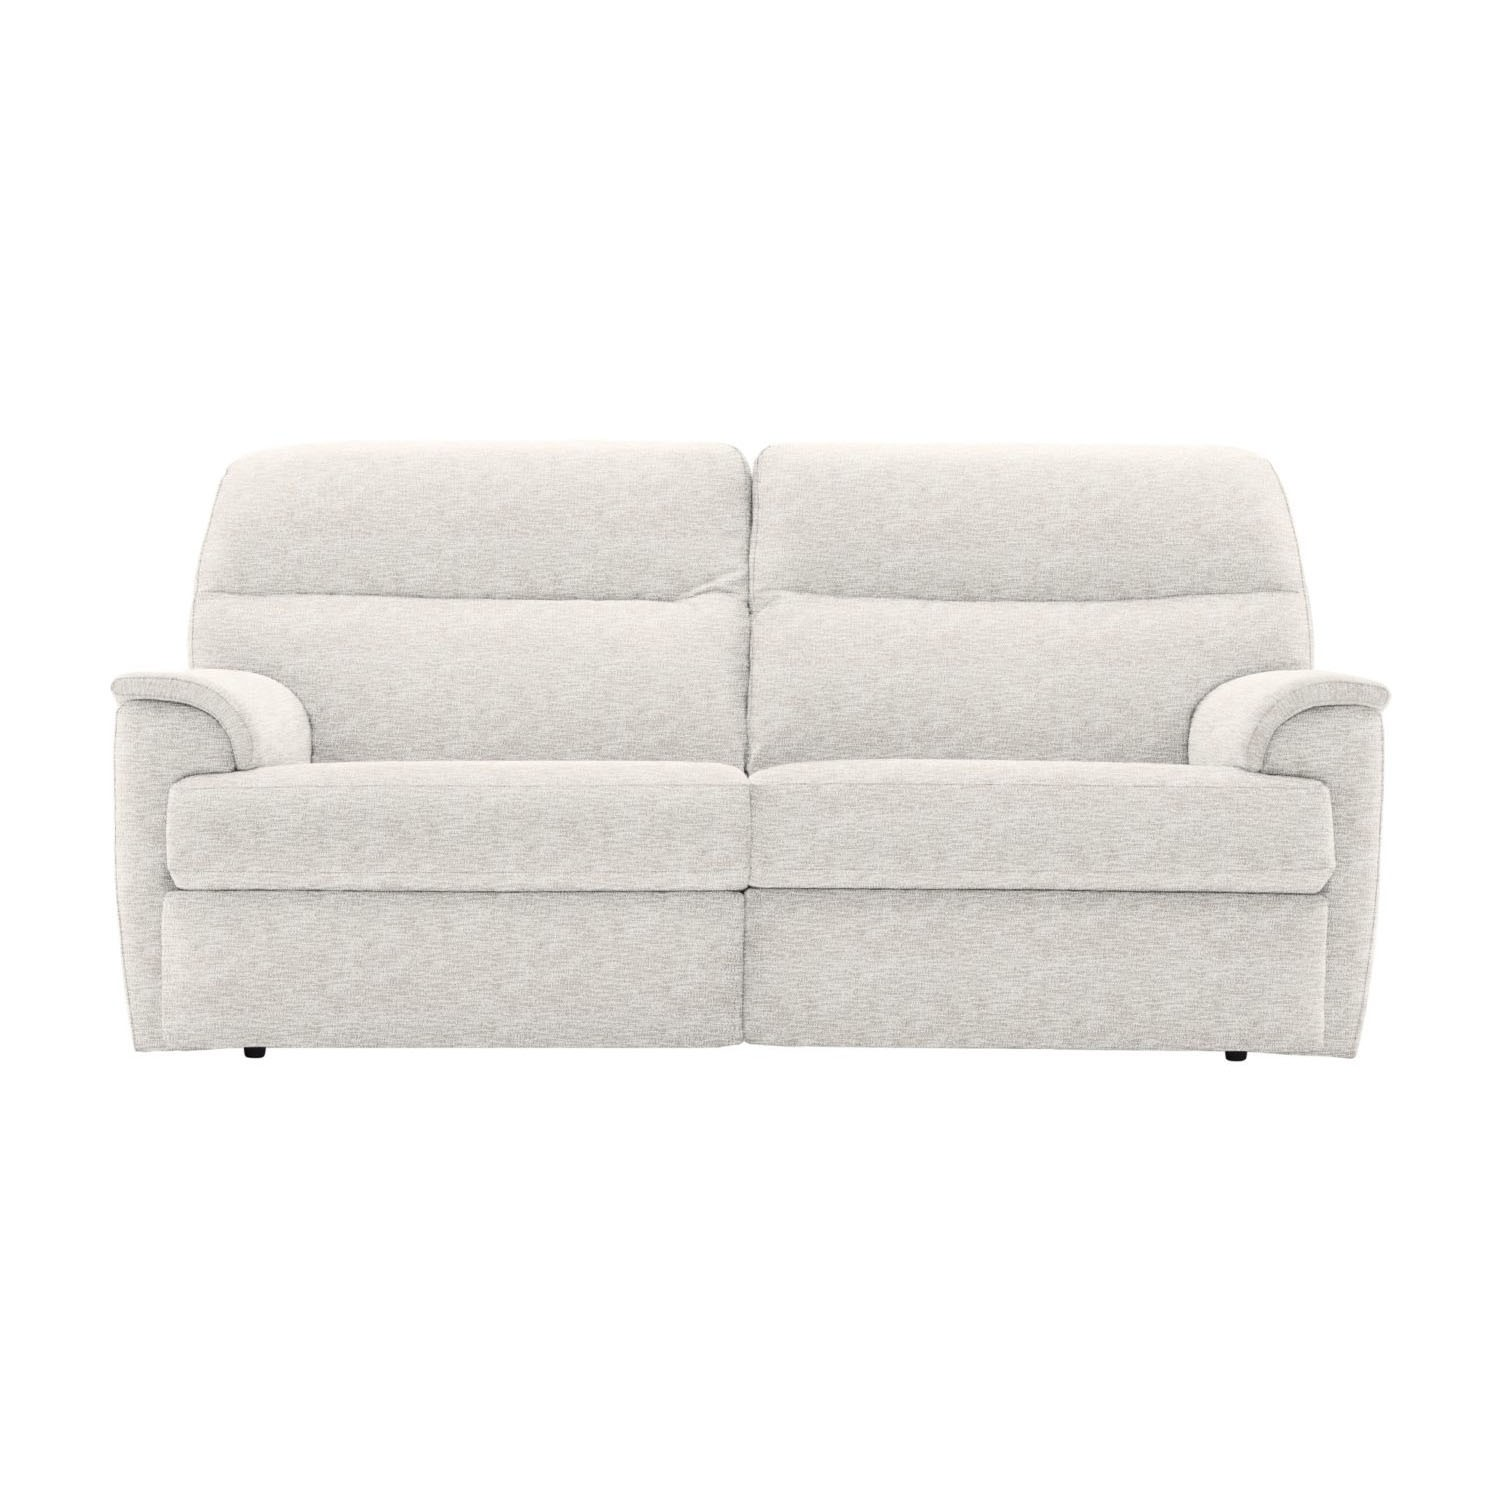 watson sofa table slipcover pattern for sectional g plan 3 seater leekes